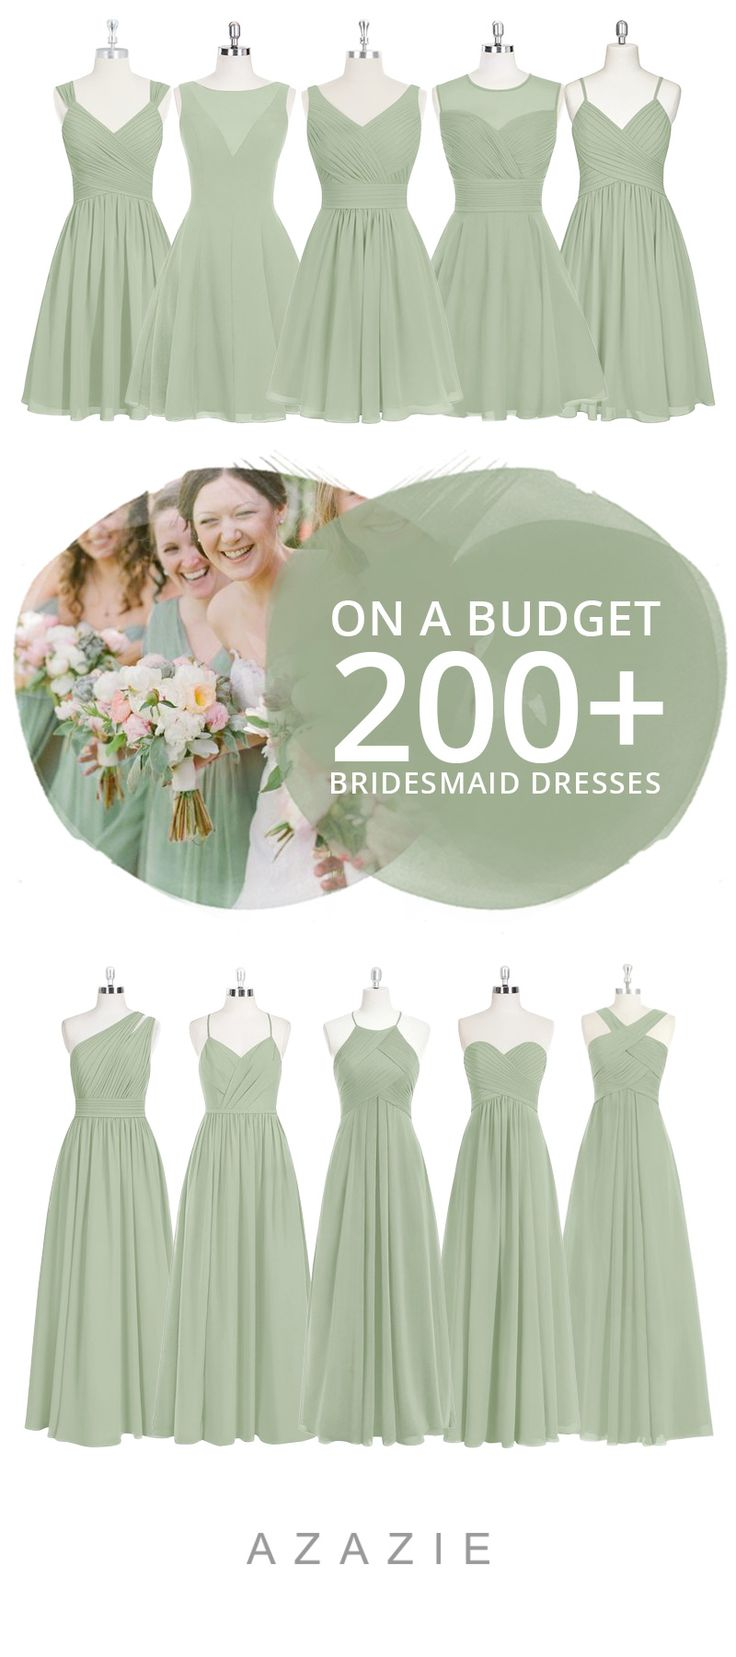 Dress your bridesmaid in this romantic soft green! Available in sizes 0-30 and free custom sizing! Every woman deserves their dream dress, that fits right while still being budget friendly!